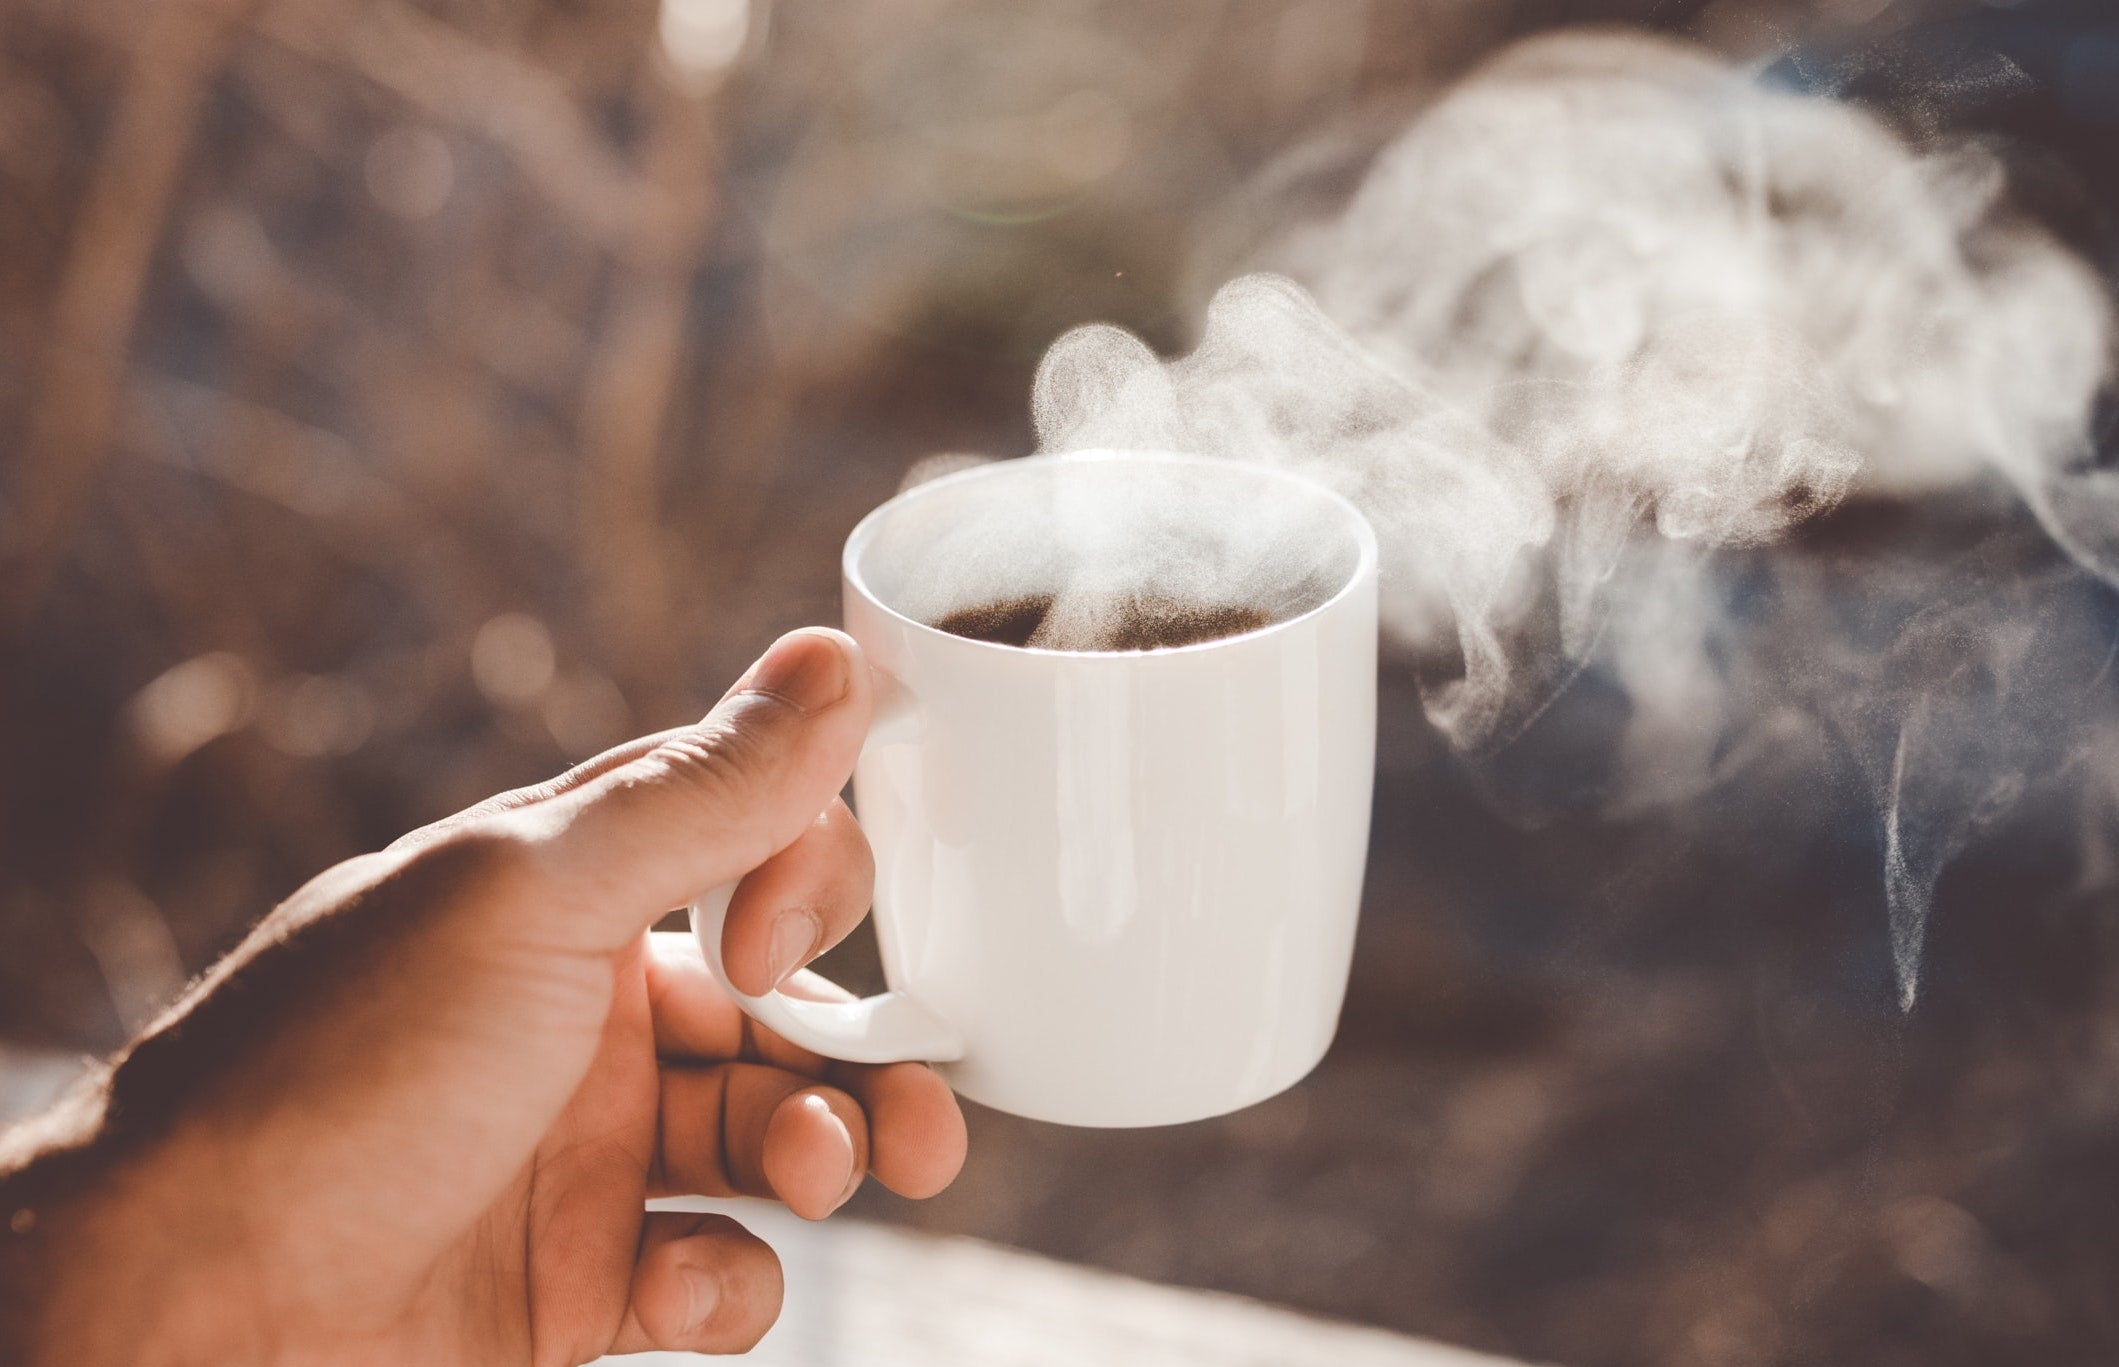 Drinking coffee in the morning is a habit. Build good habits